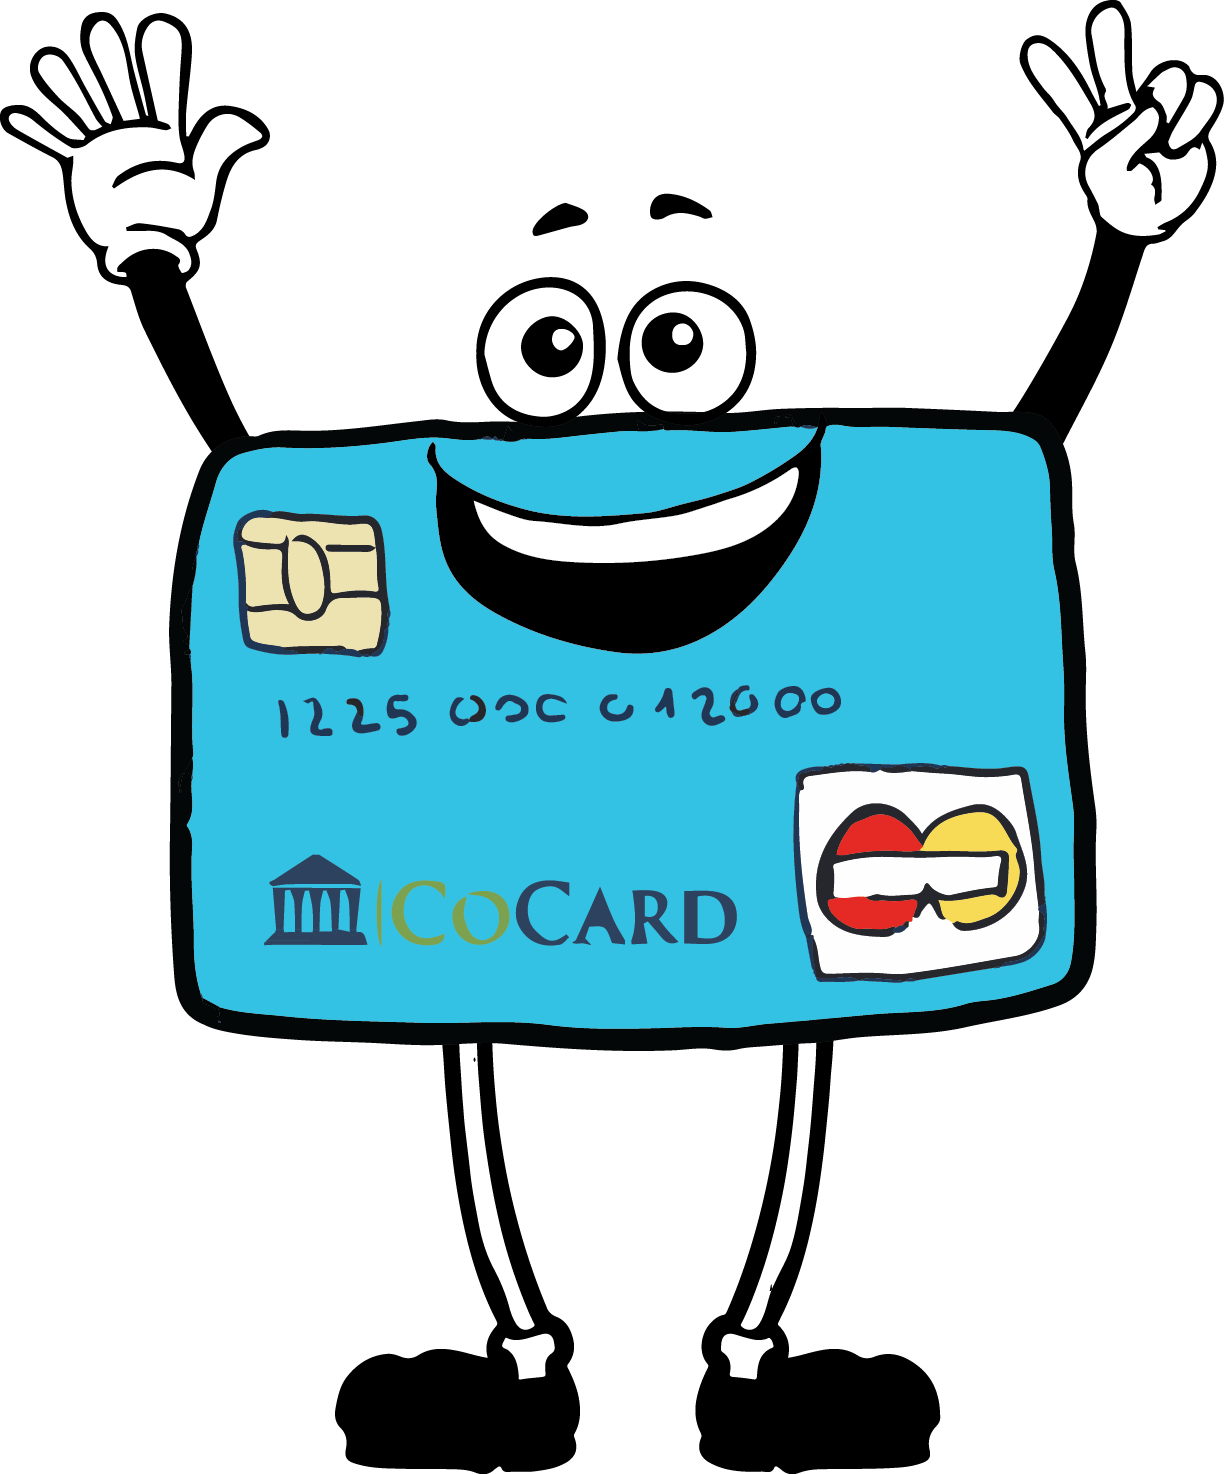 Security Cocard